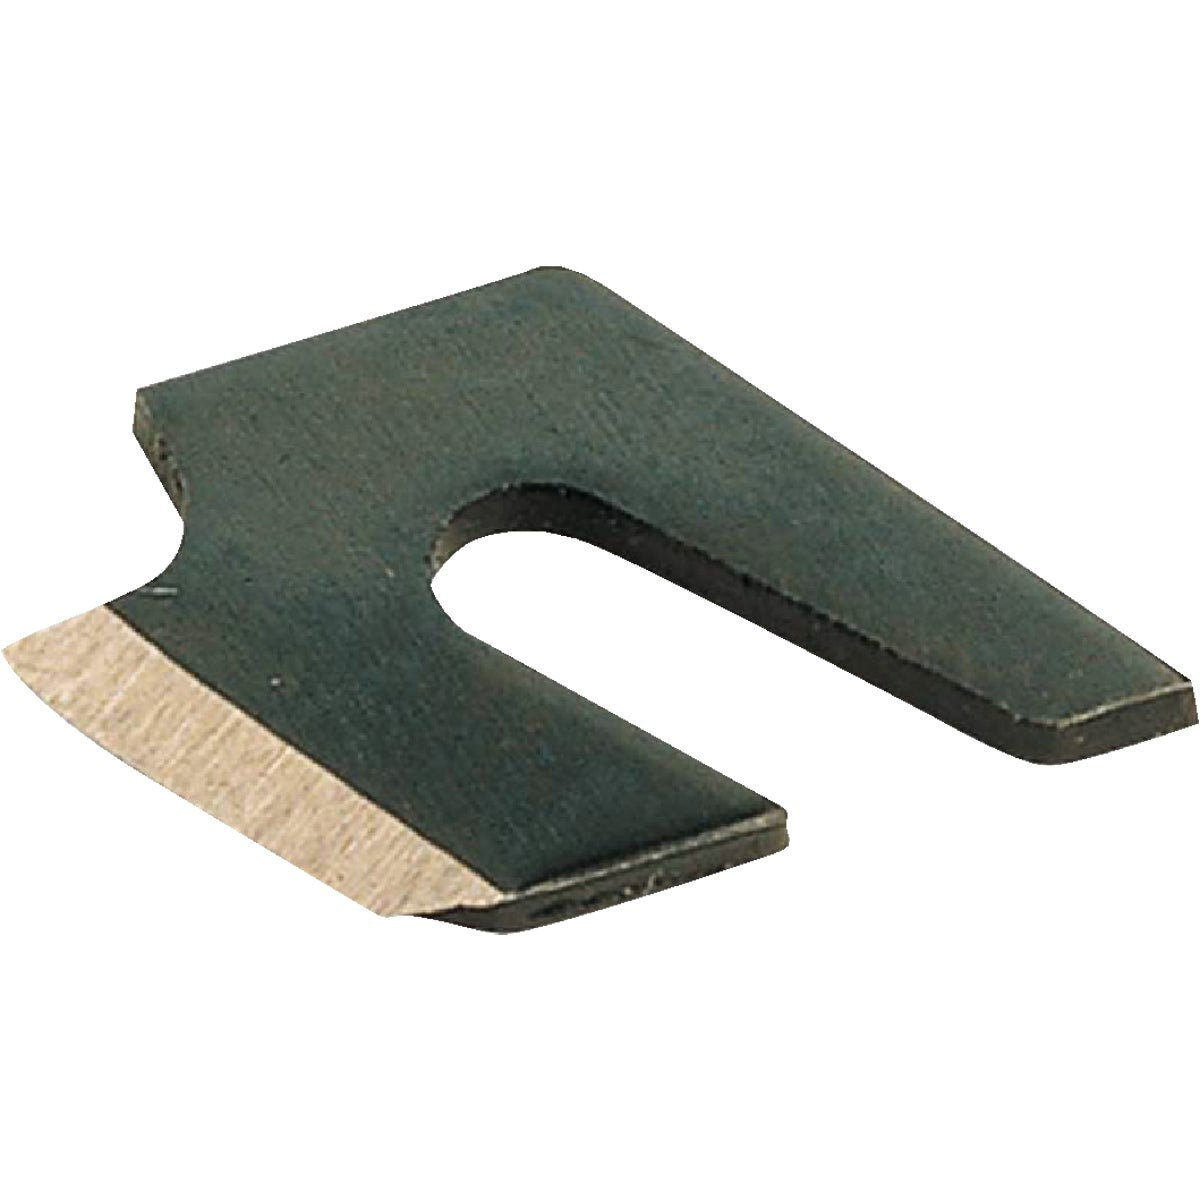 PLASTIC CUTTER BLADE - 05-712 by Fletcher Terry Co